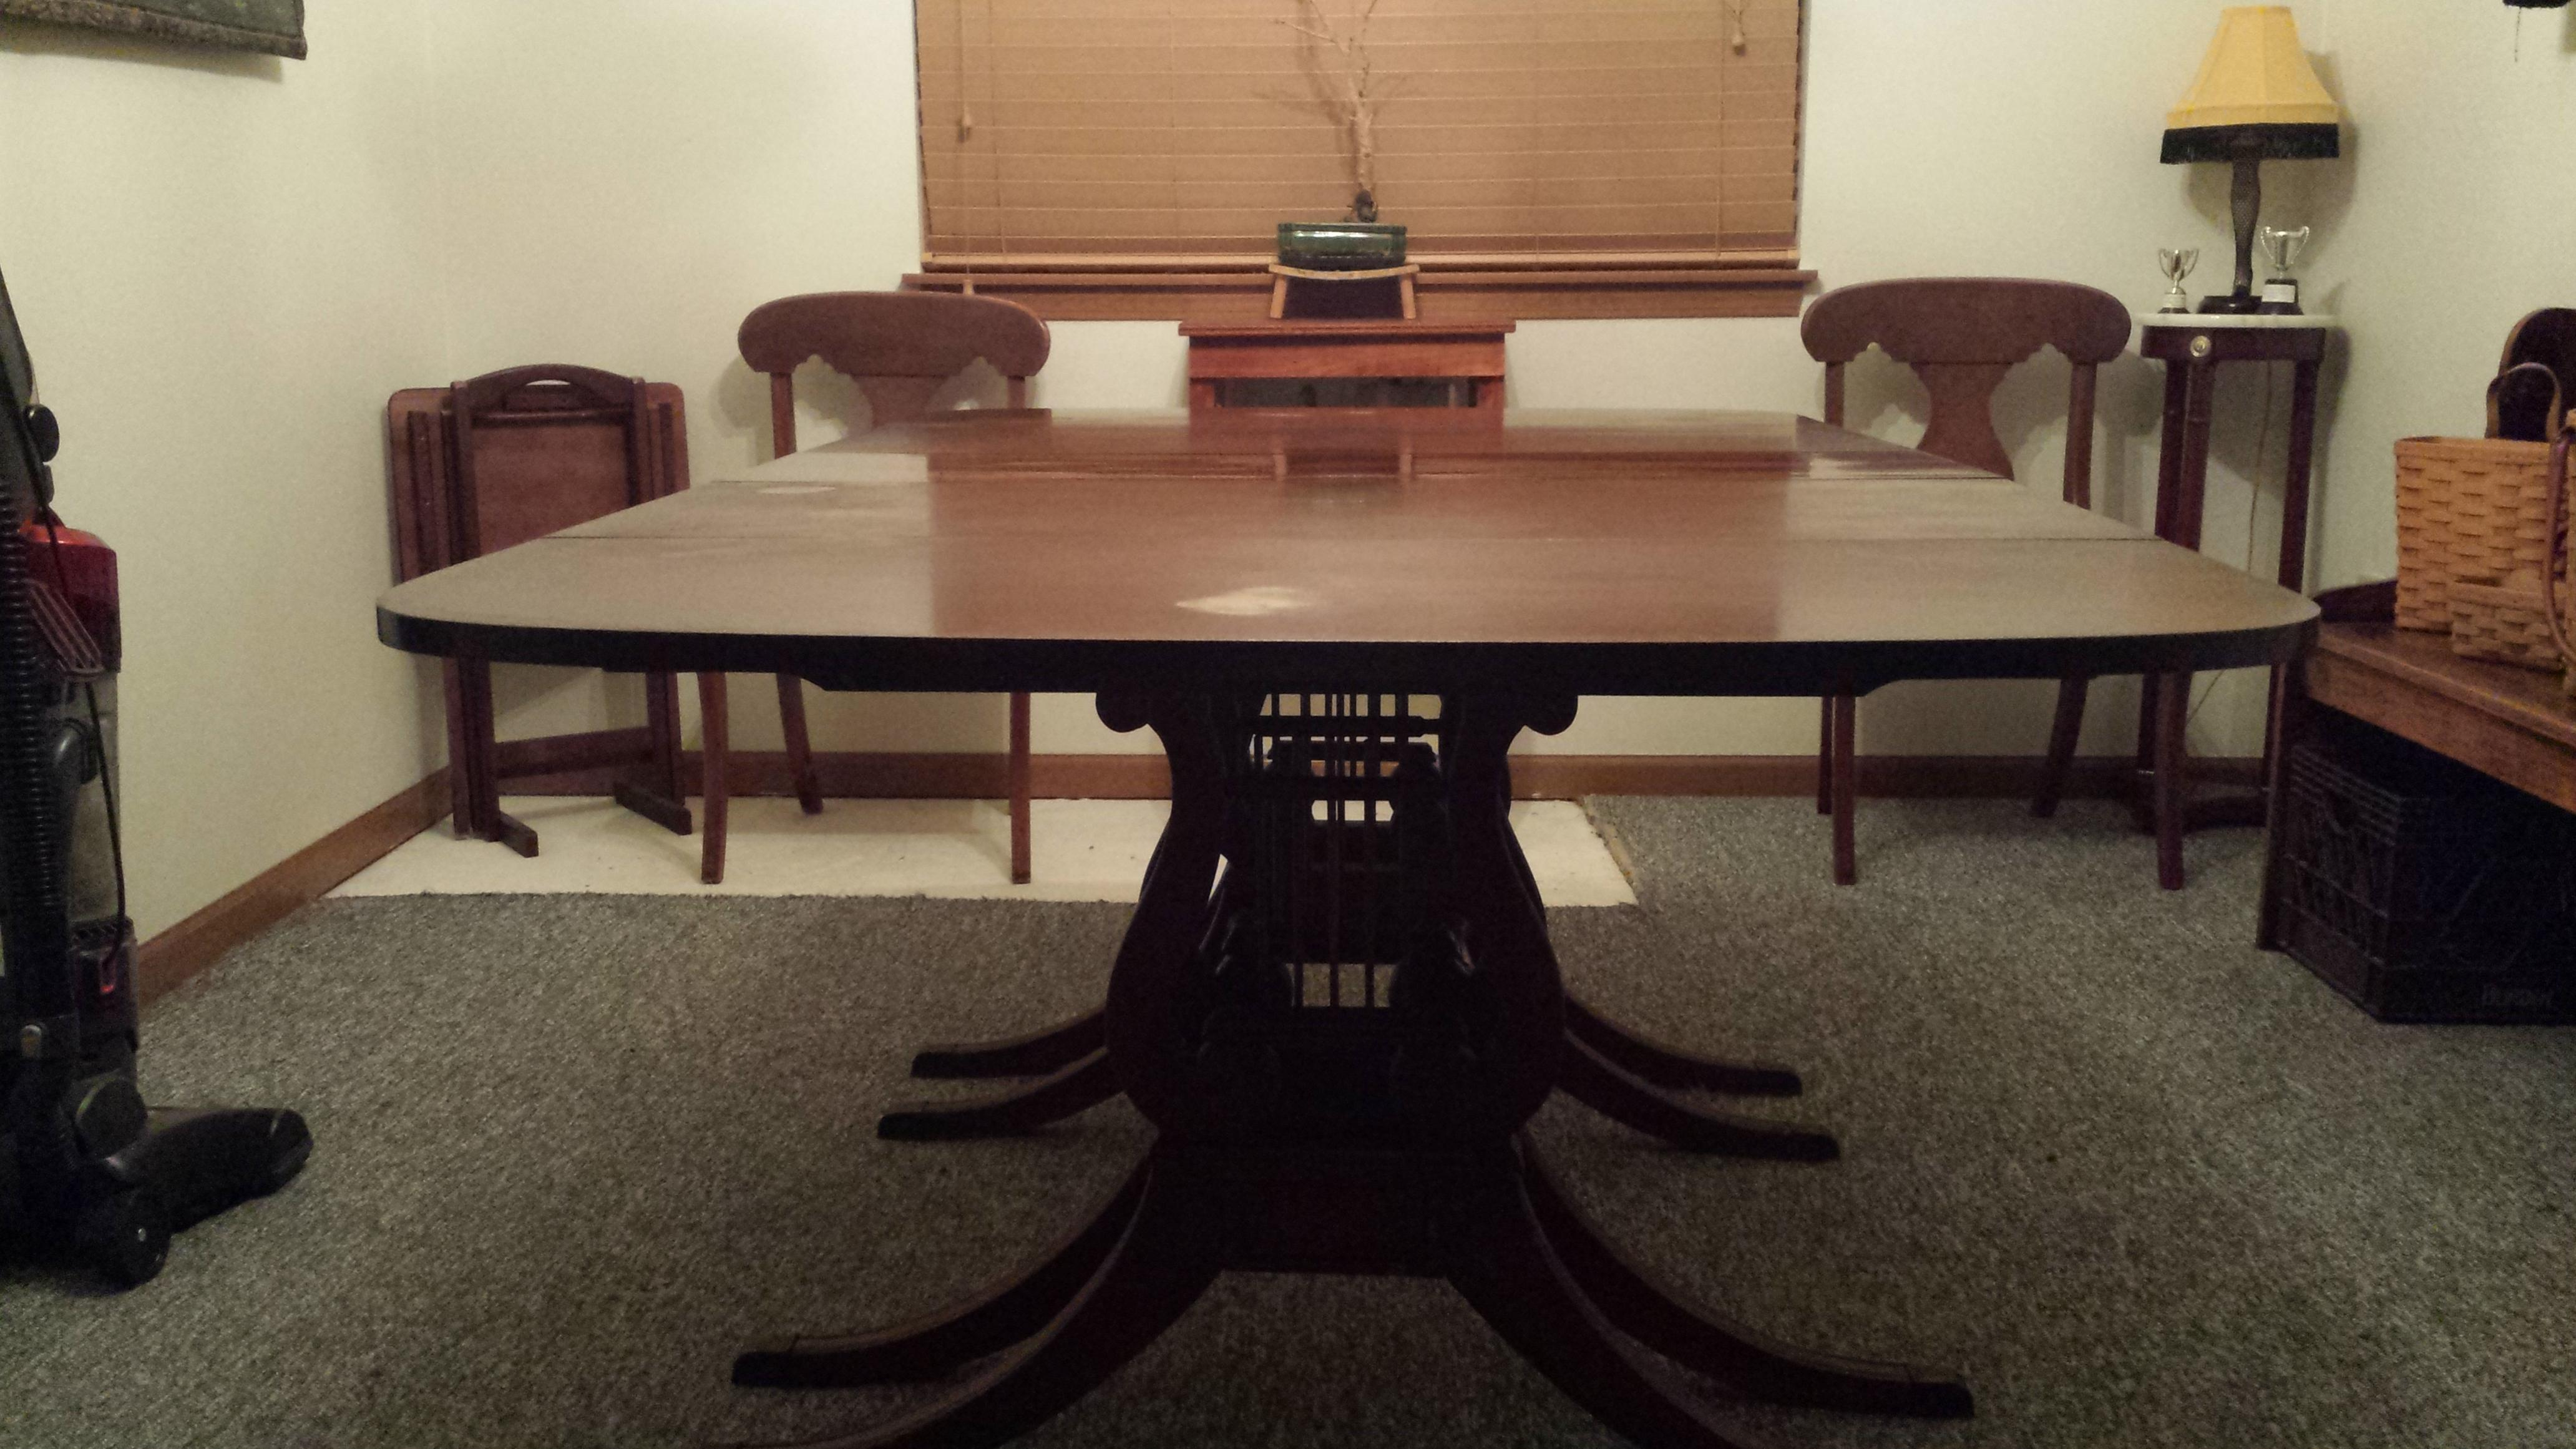 Drexel Dining Room Table and Chairs appraisal